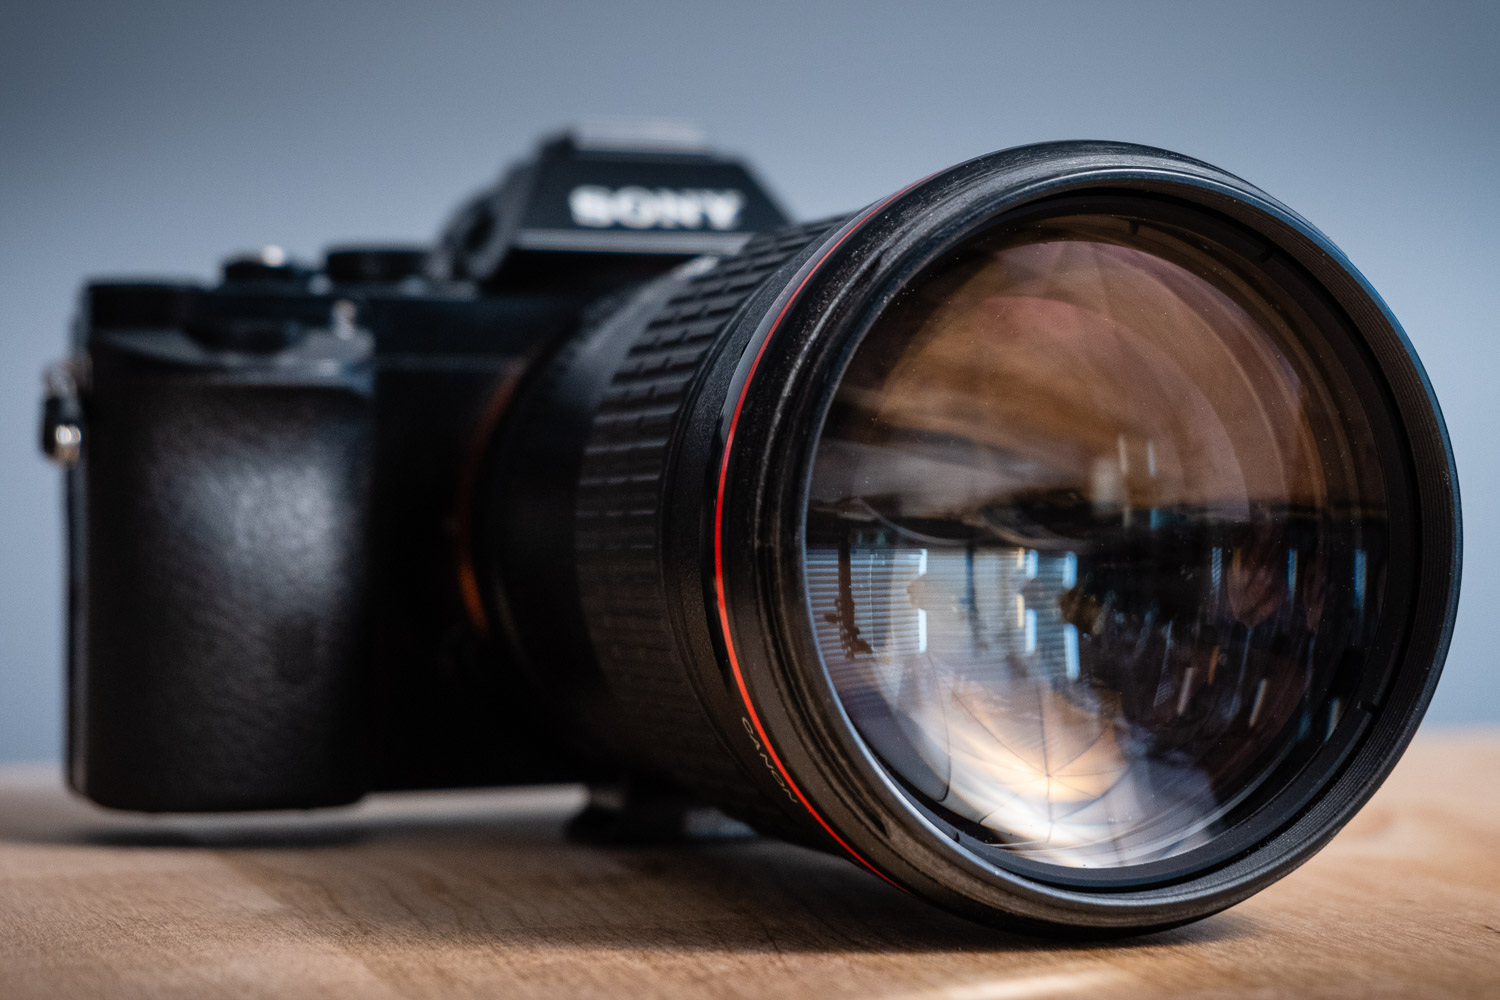 Sony A7r w/ Canon EF 135mm f/2 L Lens